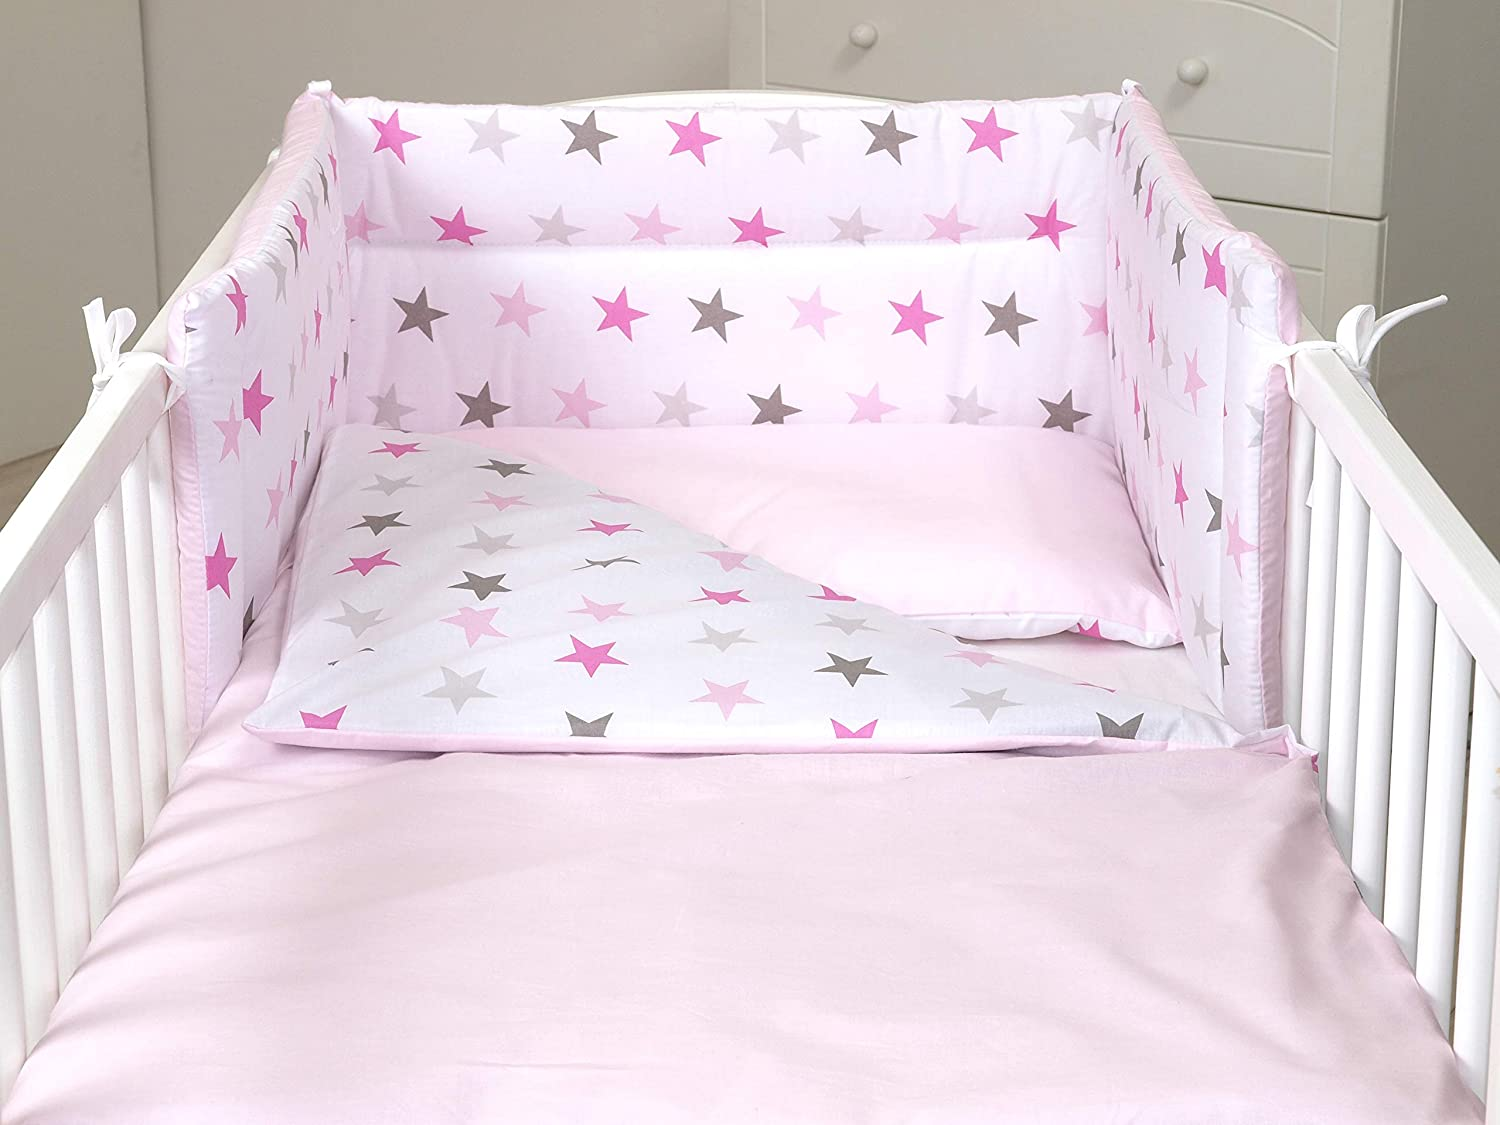 5 Pc Baby Bedding Set For Cot 120x60 Or Cot Bed 140x70cm Inc Duvet Pillow Duvet Cover Pillow Case Bumper Cot 120x60 Pink Grey Stars Light Pink Amazon Co Uk Baby